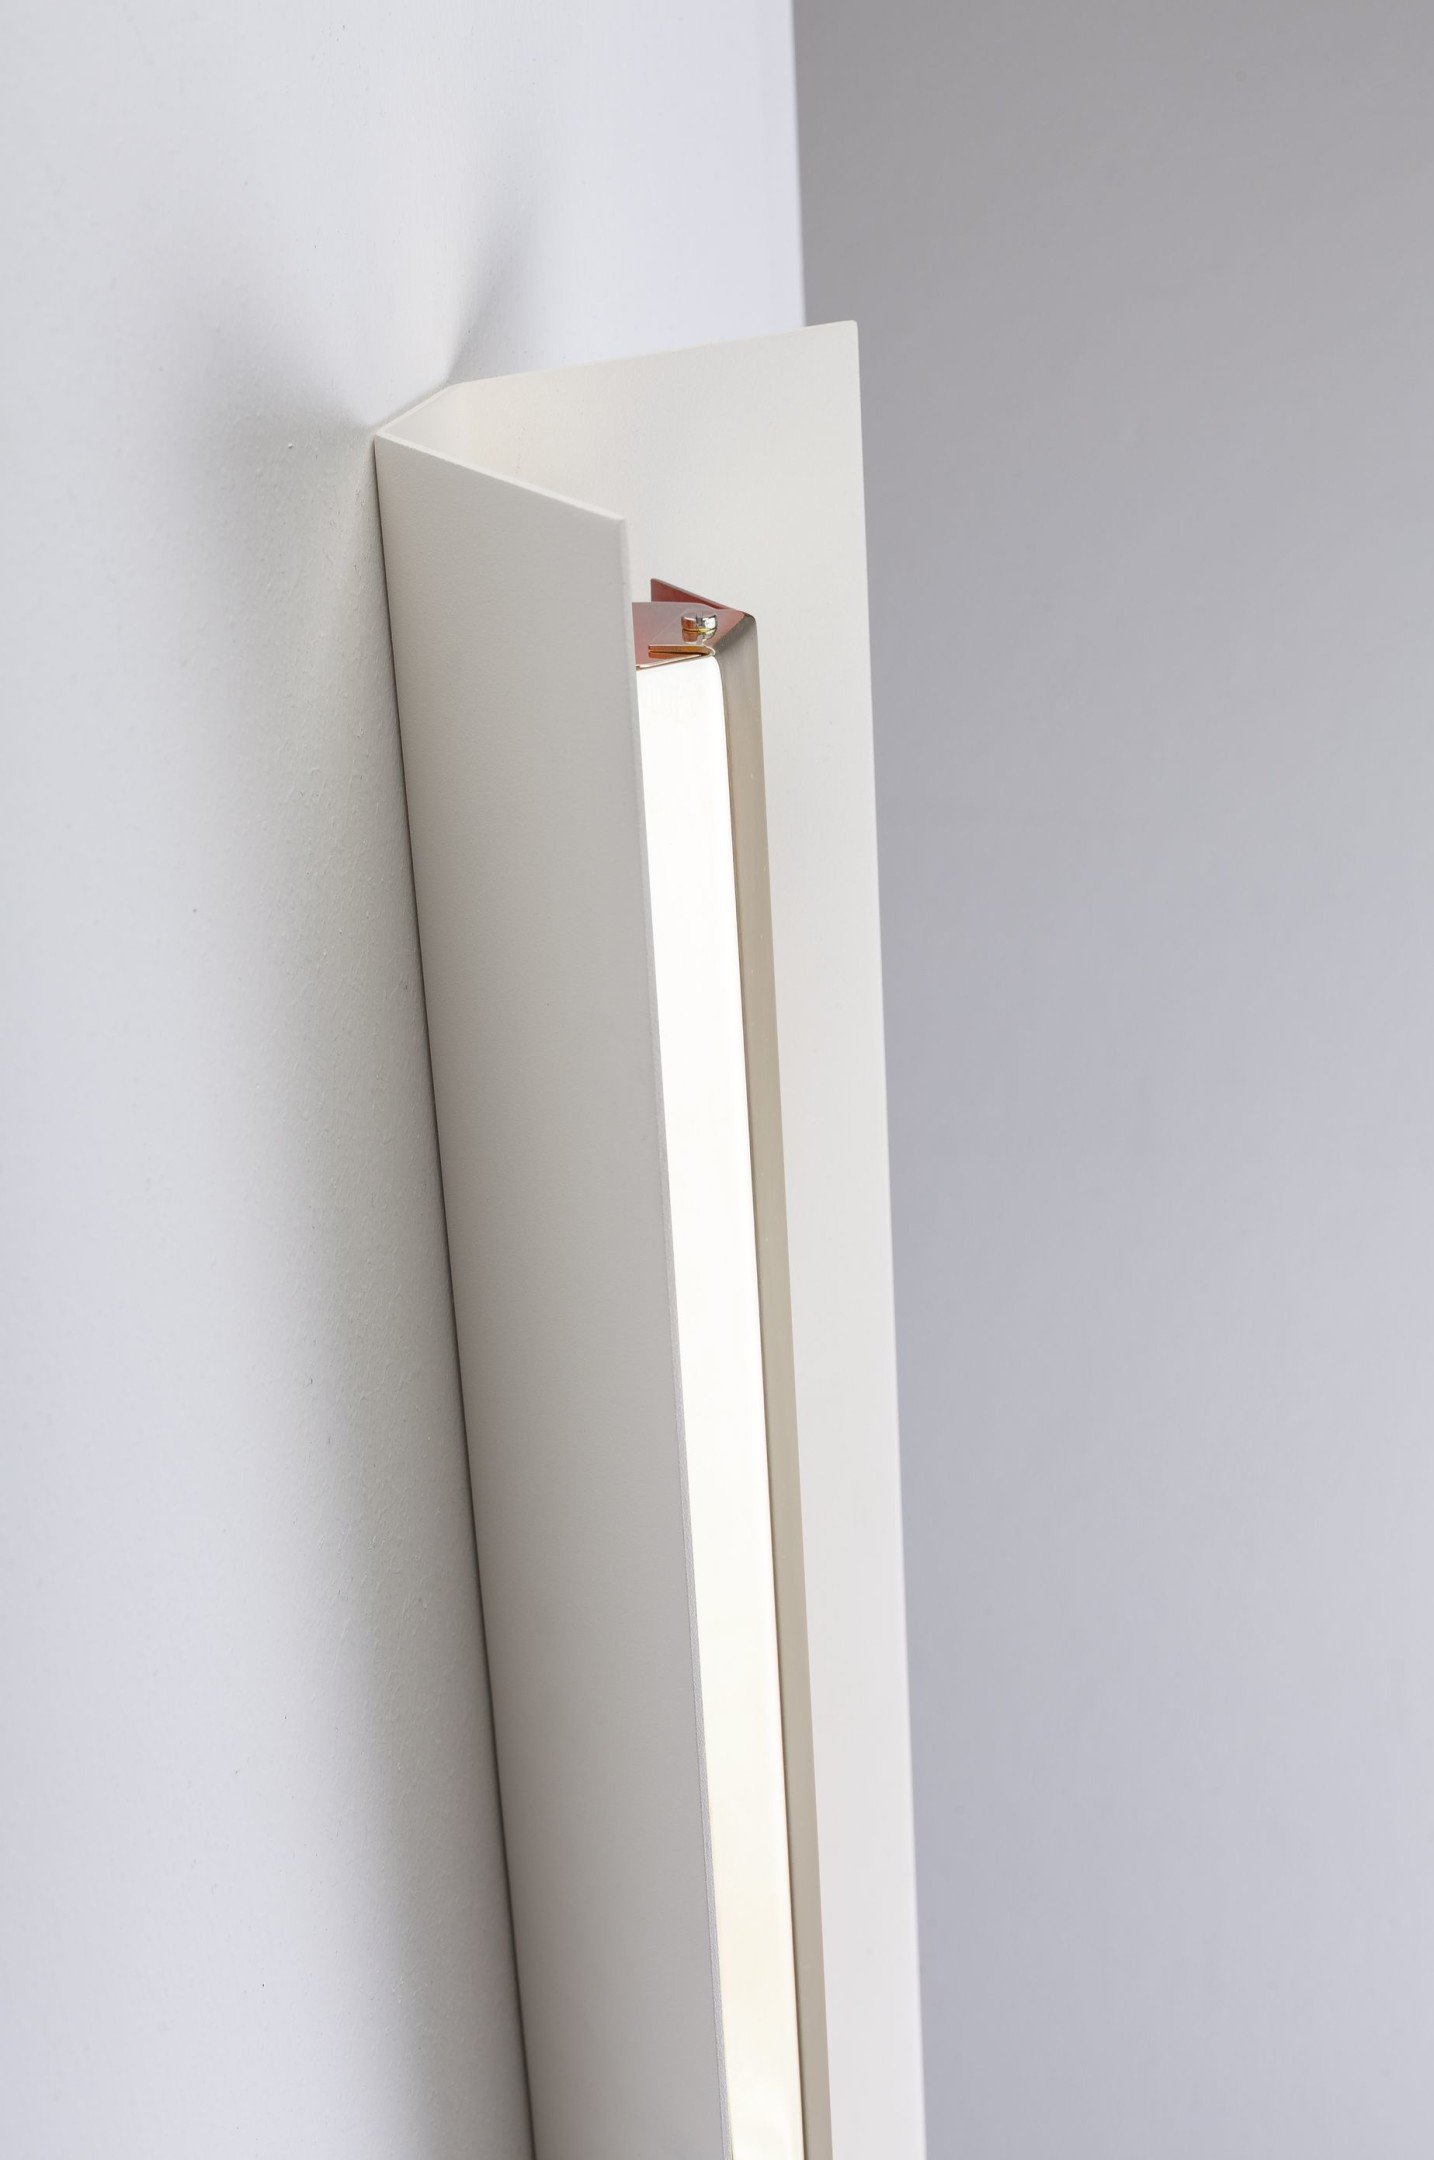 Wall lamp Misalliance Ex 100 white, Lexavala - 447398 - photo